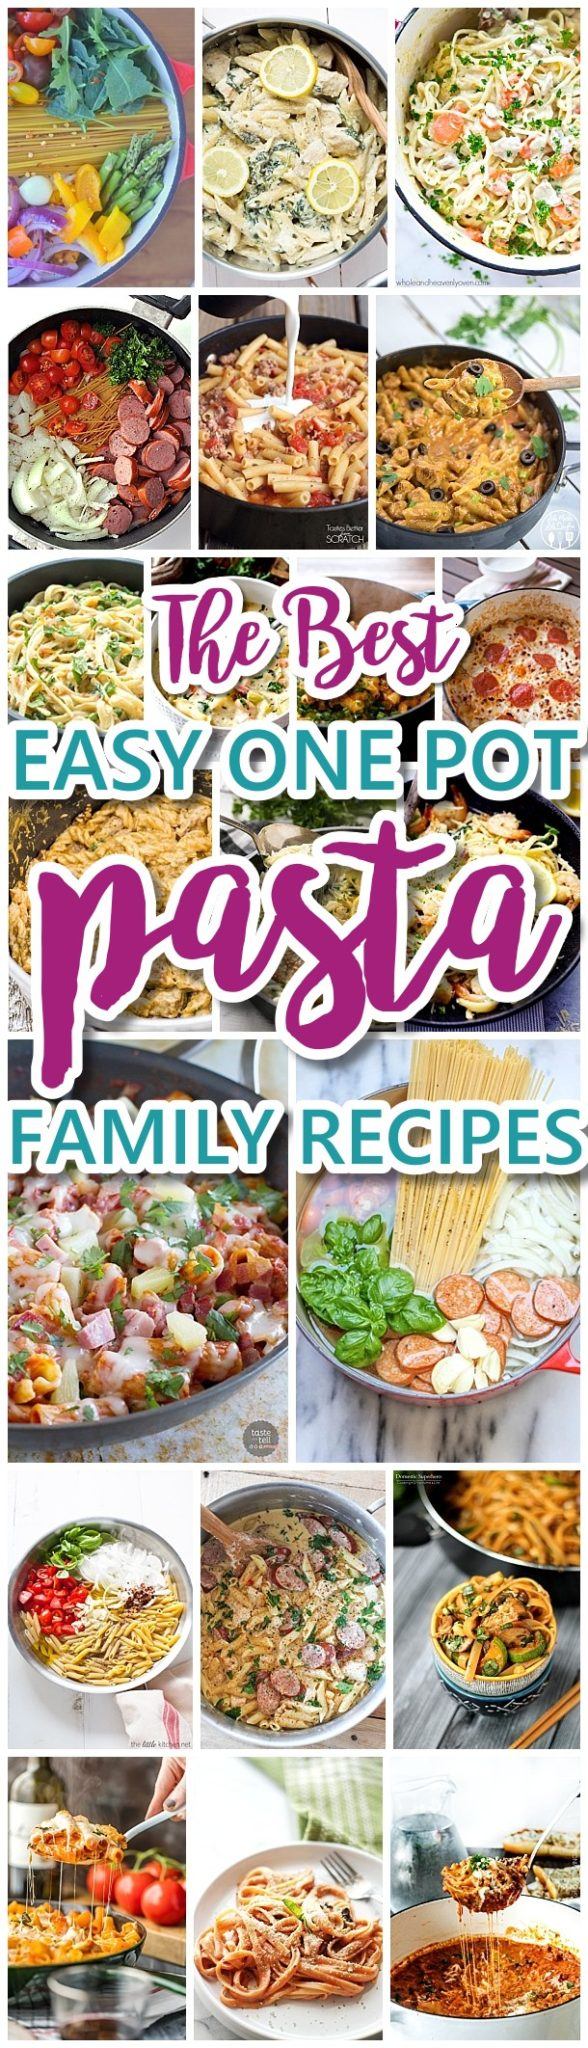 The Best Easy One Pot Pasta Family Dinner Recipes - Grab a Simple Quick and Delicious Hearty Recipe for dinner this week - via Dreaming in DIY